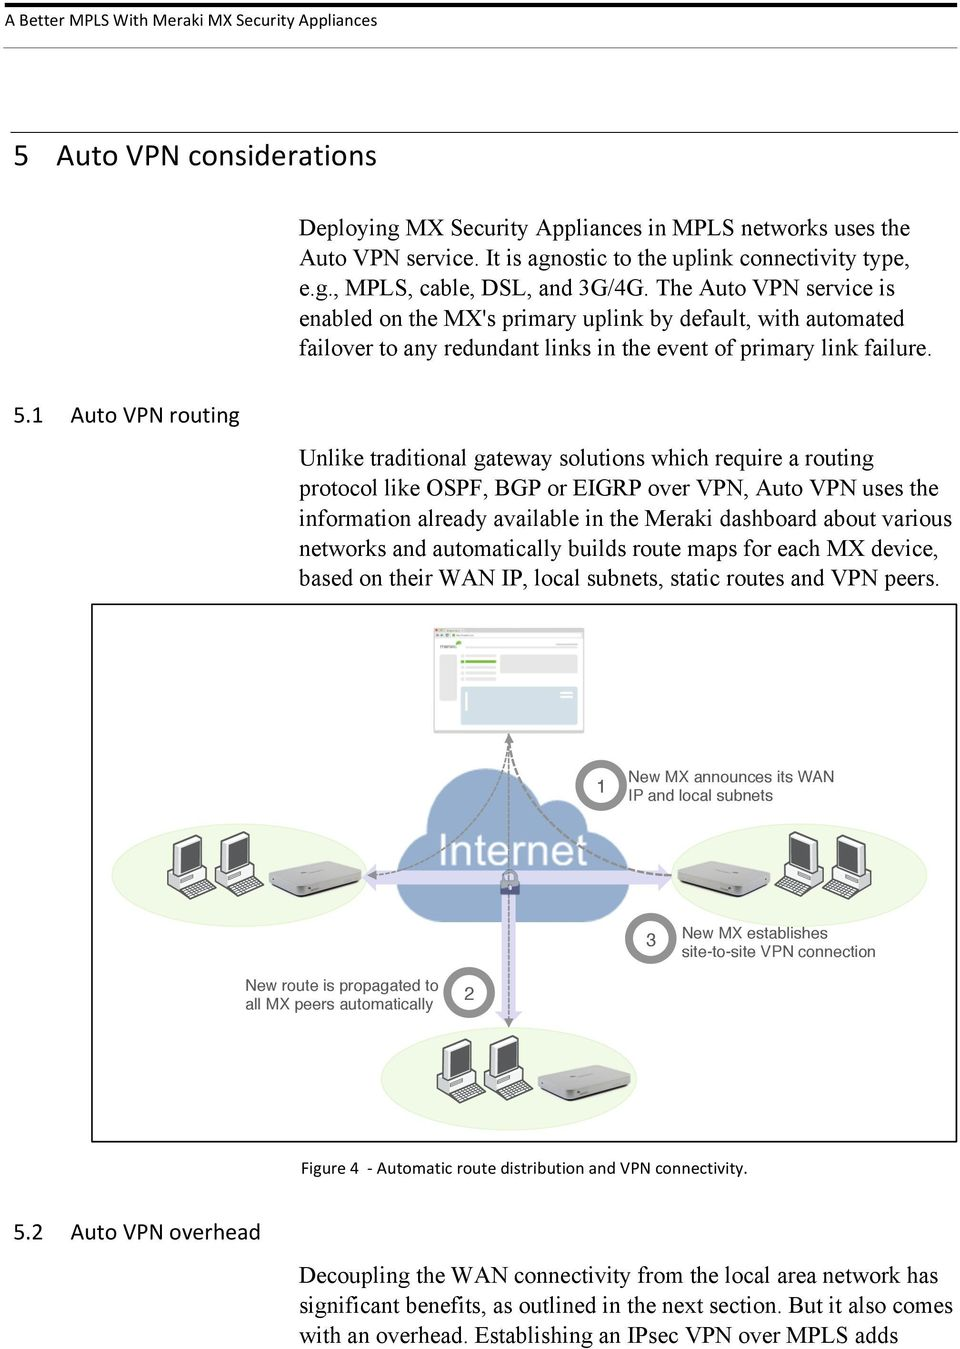 A Better MPLS Network With Meraki MX Security Appliances - PDF